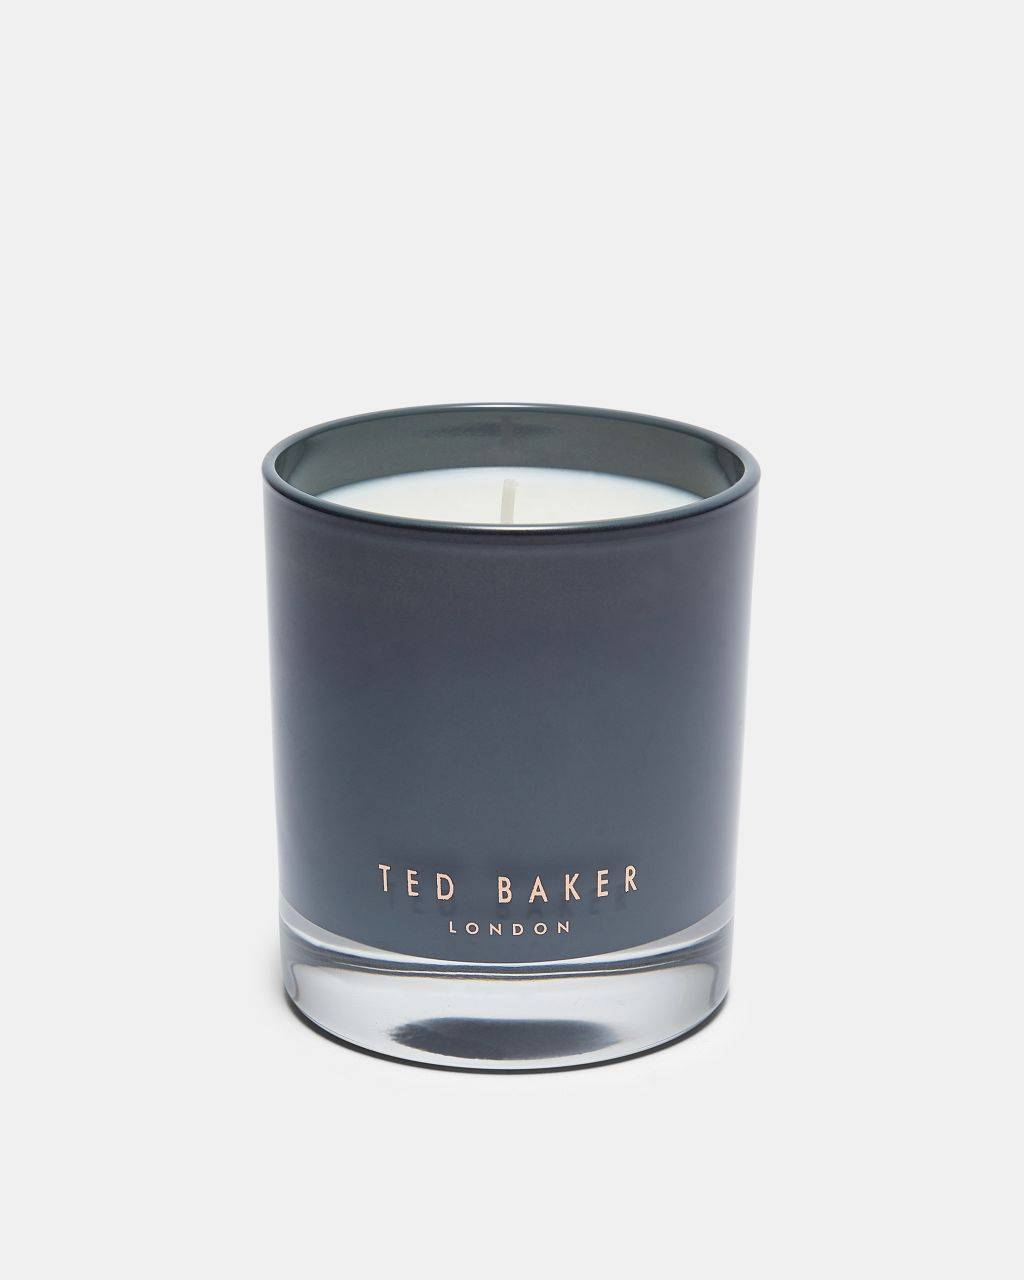 Ted Baker Fig And Olive Blossom Scented Candle  - Grey - Size: One Size